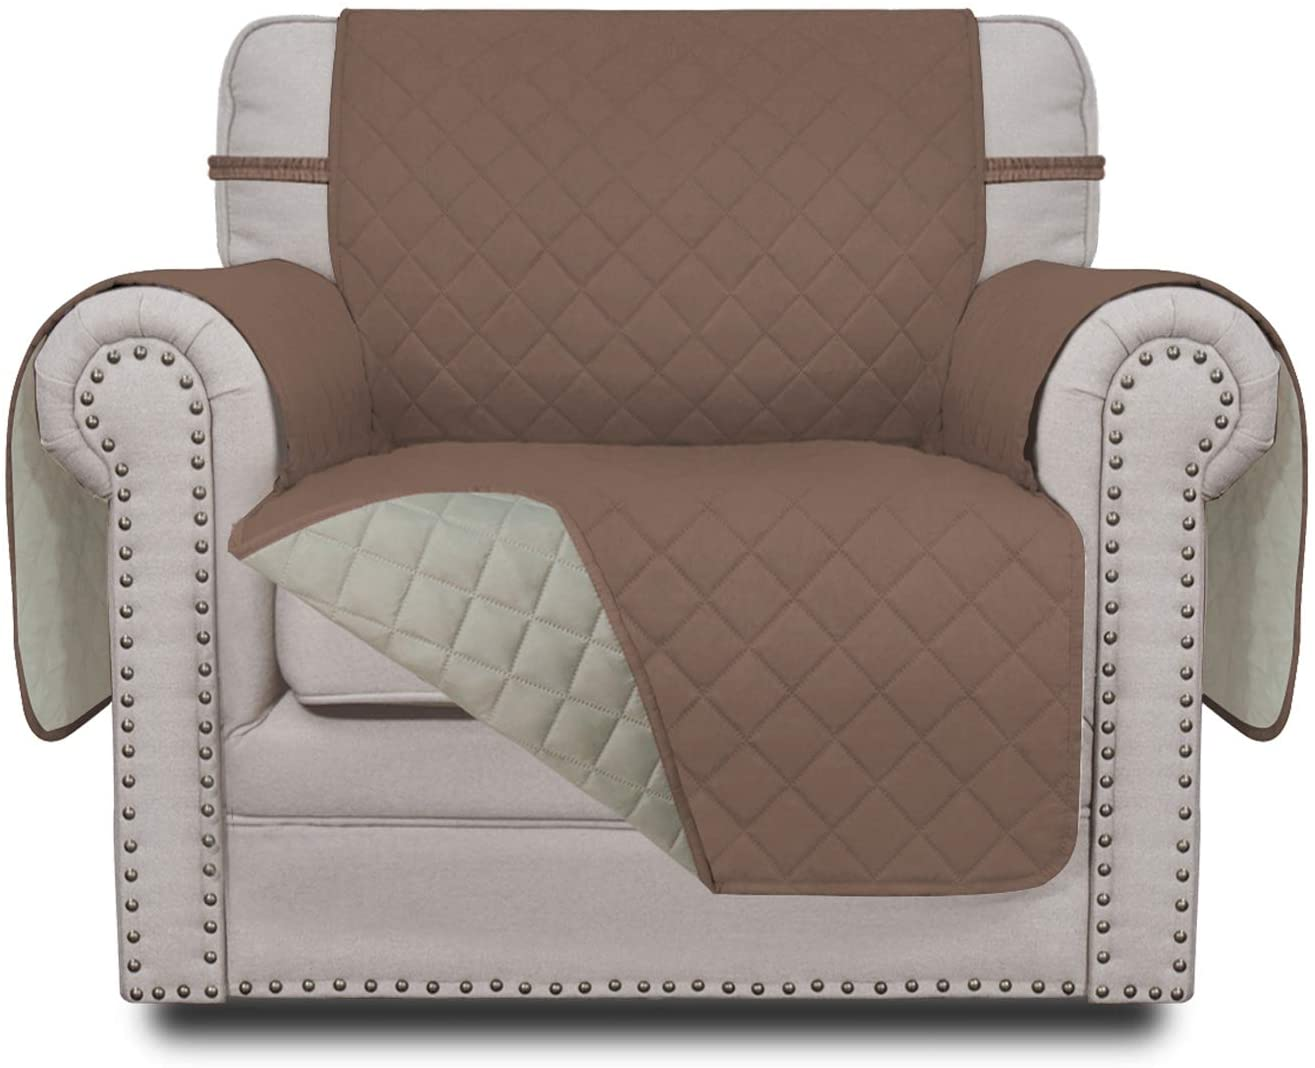 Easy-Going Sofa Slipcover Reversible Chair Cover Water Resistant Couch Cover Furniture Protector with Elastic Straps for Pets Kids Children Dog Cat(Chair,Brown/Beige)